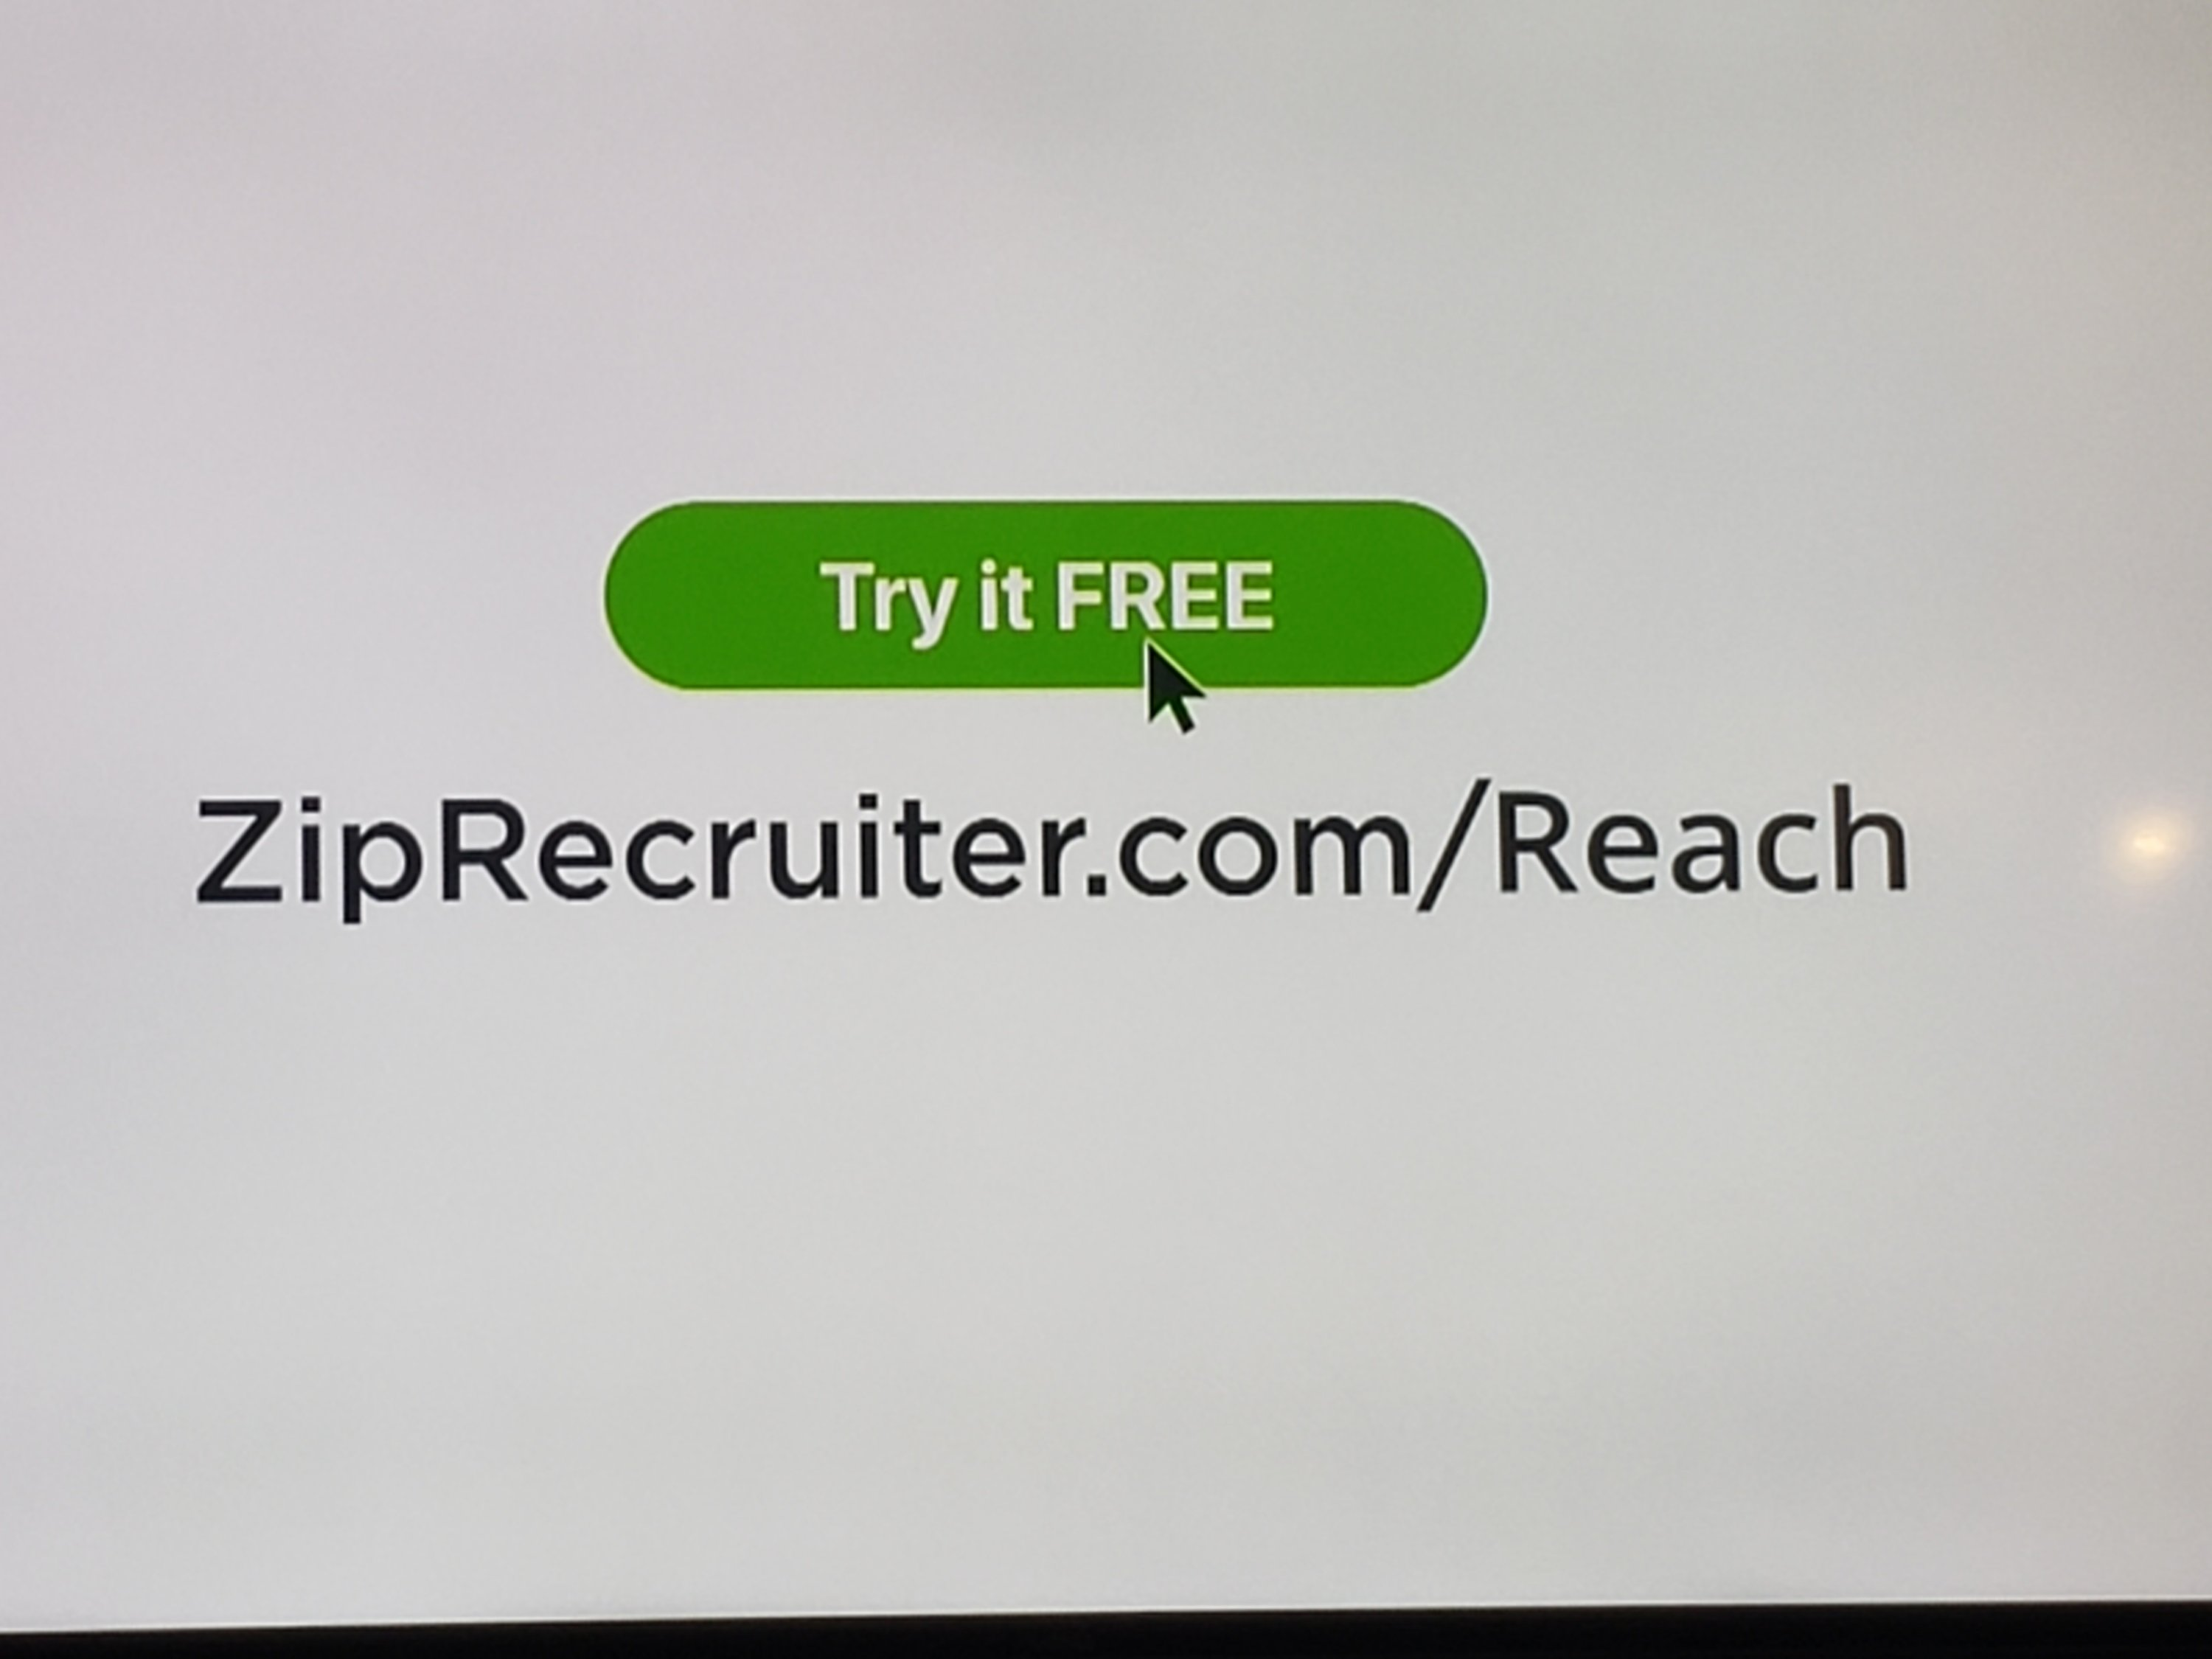 ZipRecruiter.com/reach